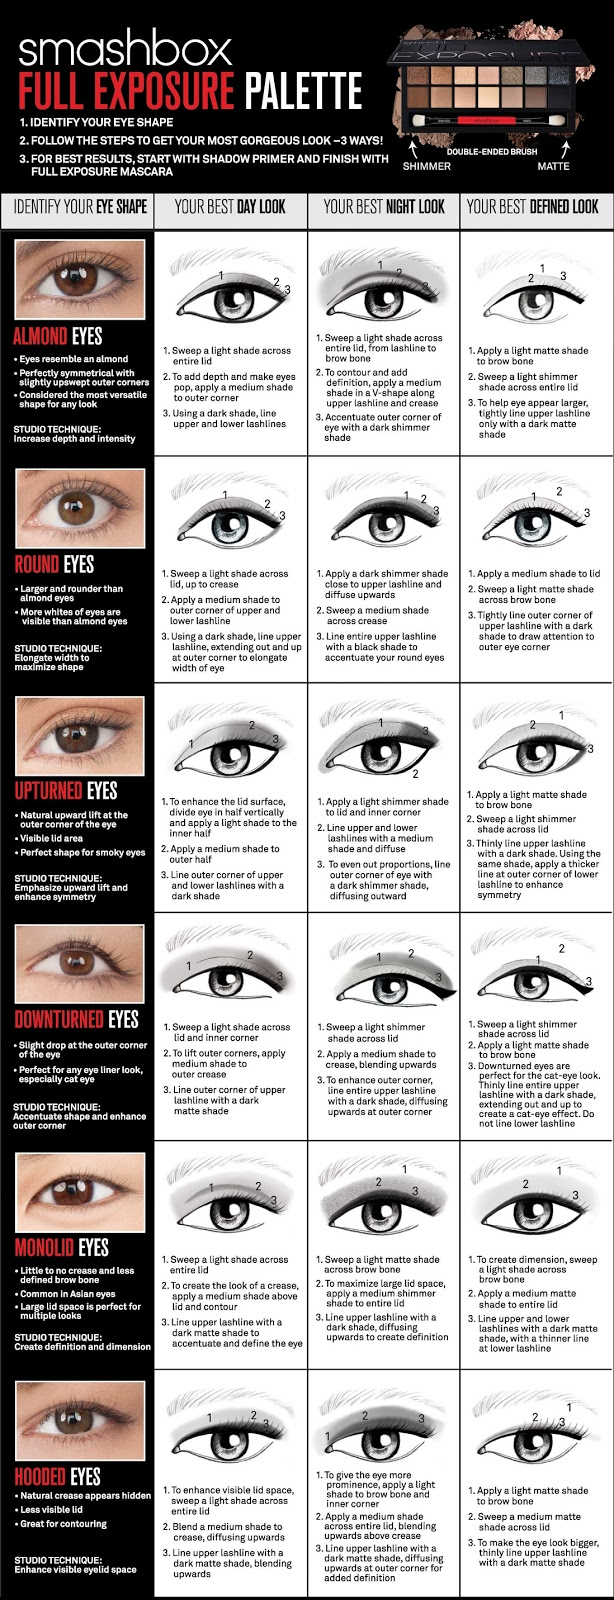 http://imabeautygeek.com/2014/01/08/how-to-apply-makeup-for-your-eye-shape-courtesy-of-smashbox/